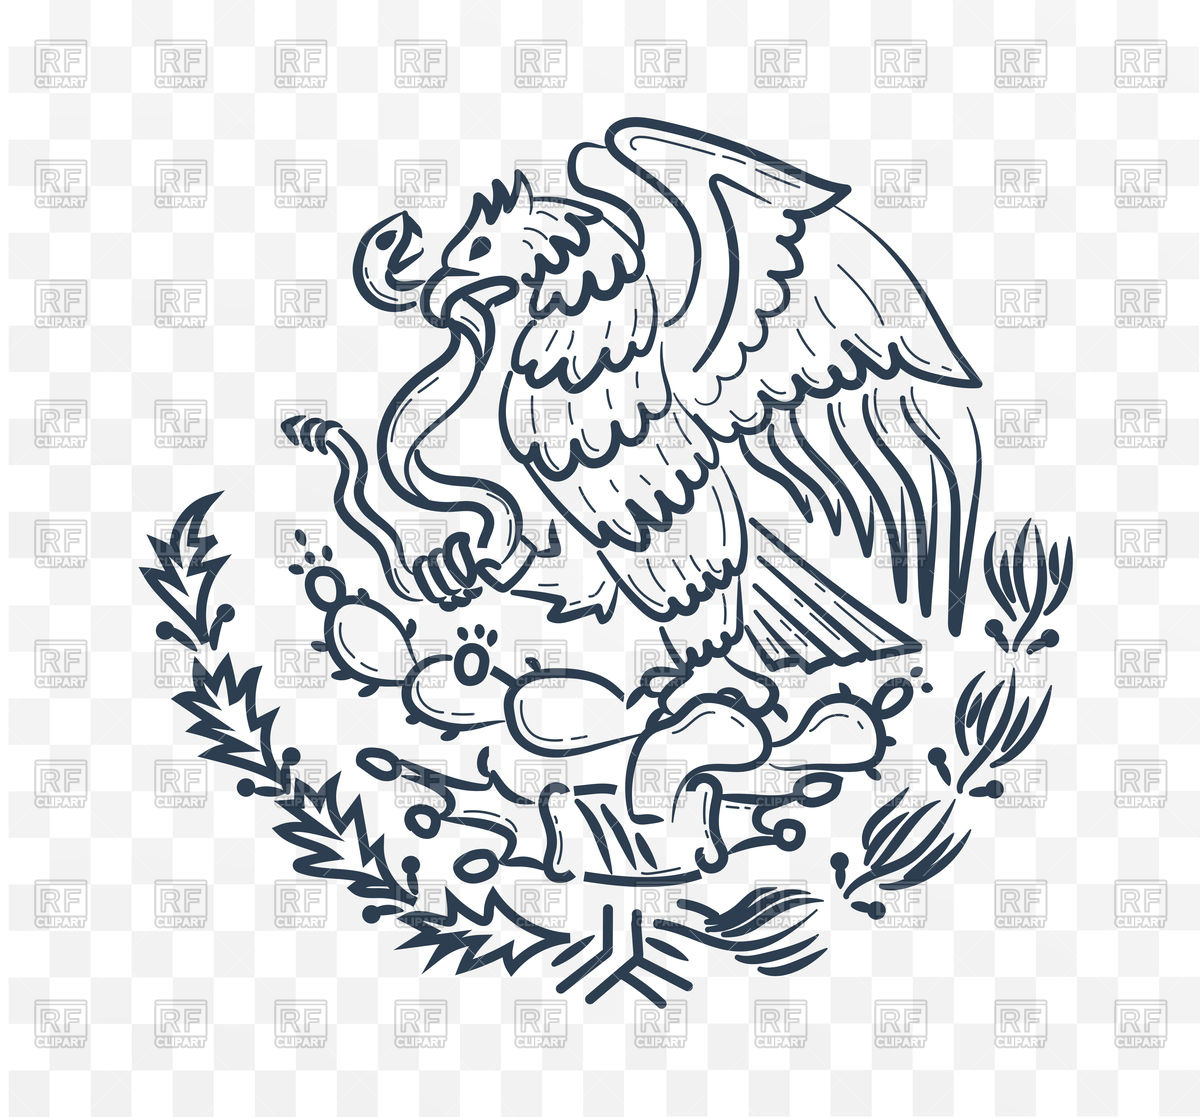 1200x1117 Mexico Coat Of Arms, Eagle And Snake Vector Image Vector Artwork